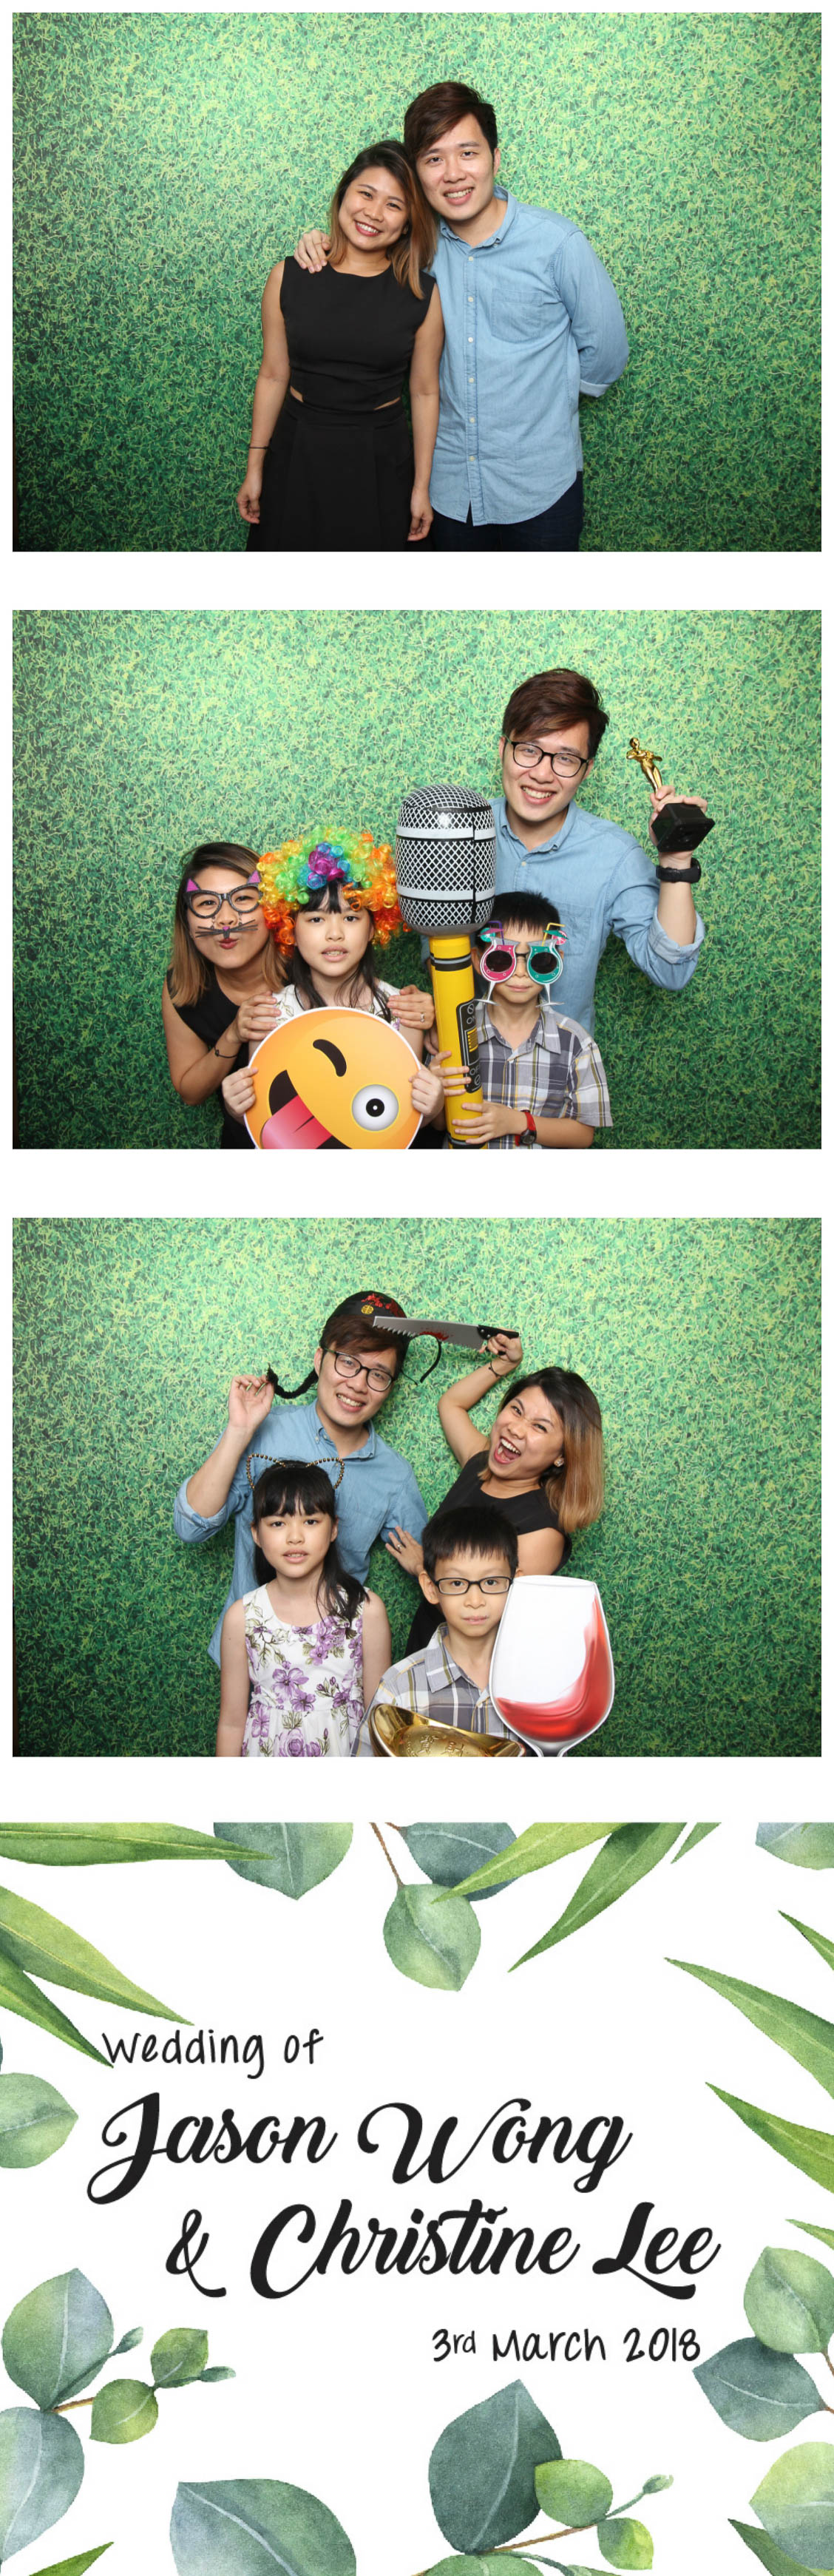 Photobooth 0302-30